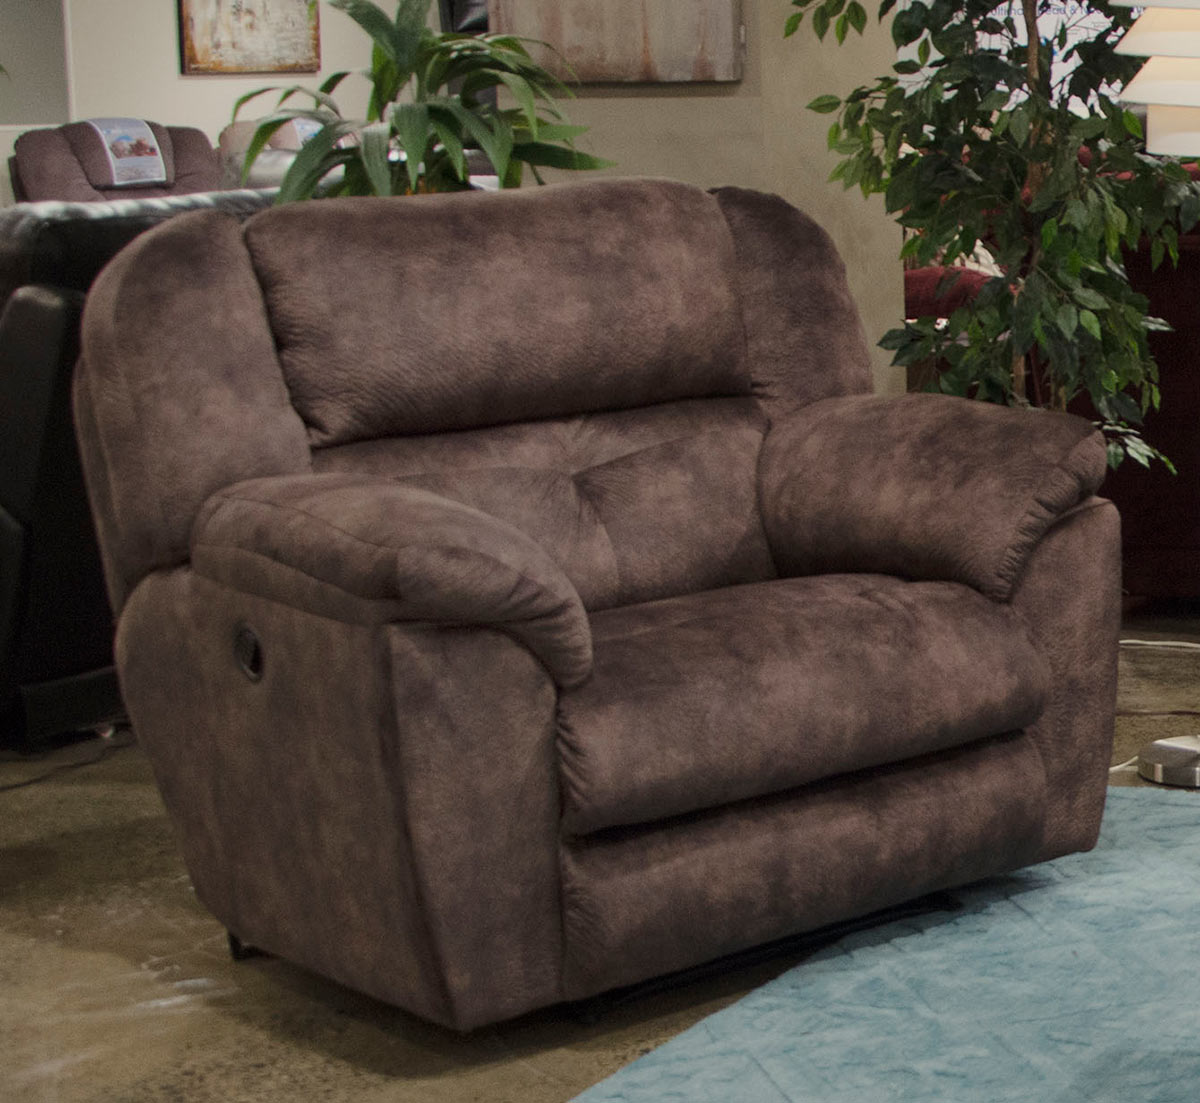 CatNapper Carrington Recliner Chair - Dusk